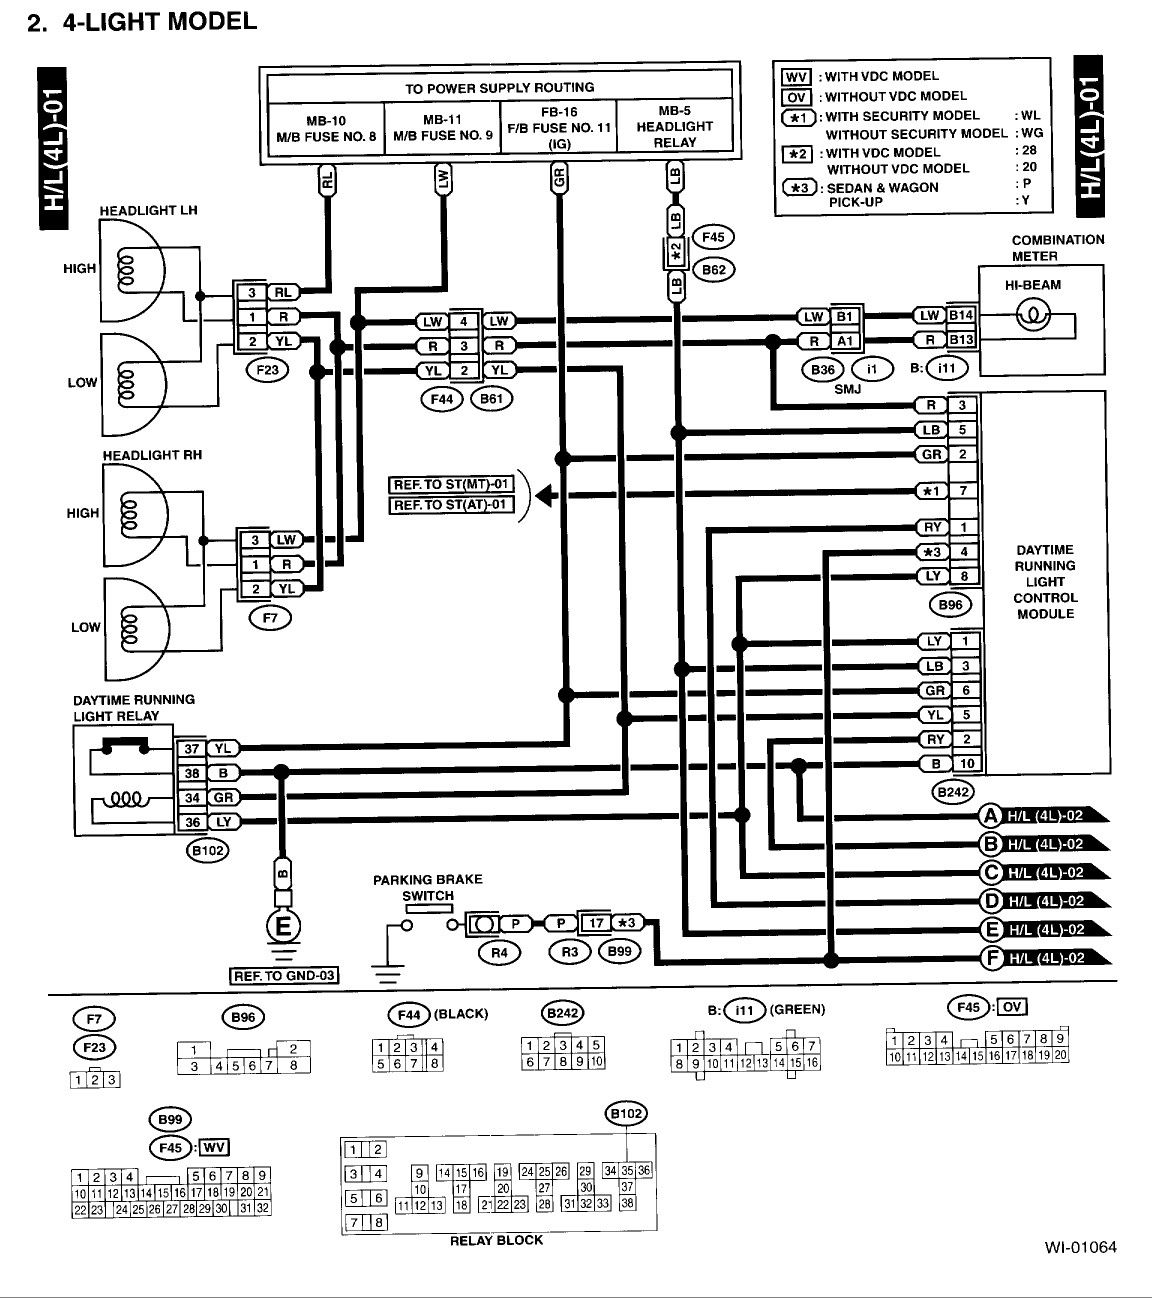 Subaru Mcintosh Wiring Diagram Collection | Subaru, Subaru legacy, Subaru  wrx enginePinterest